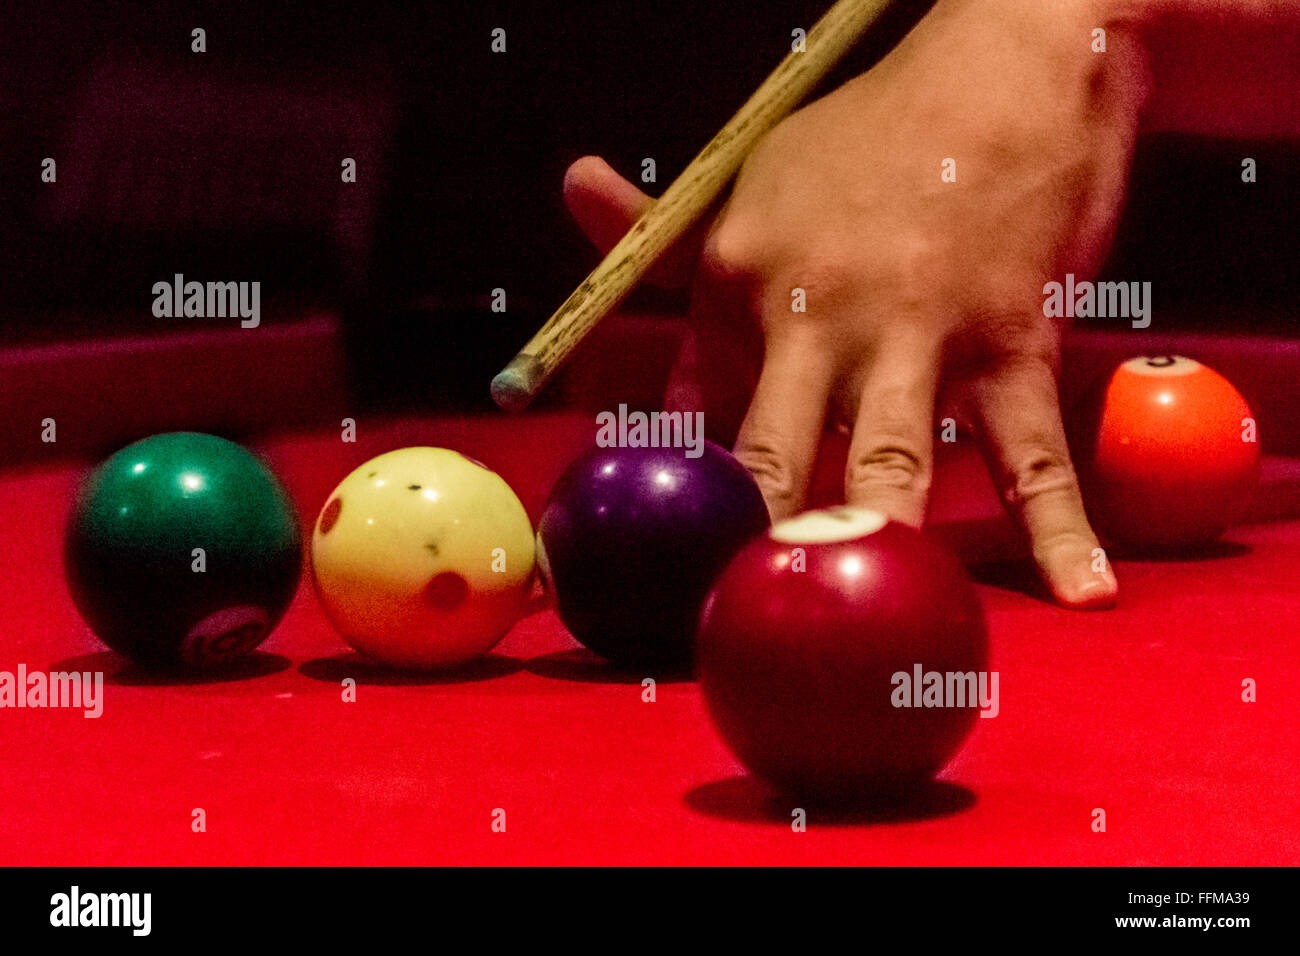 Pool table 8ball - Stock Image